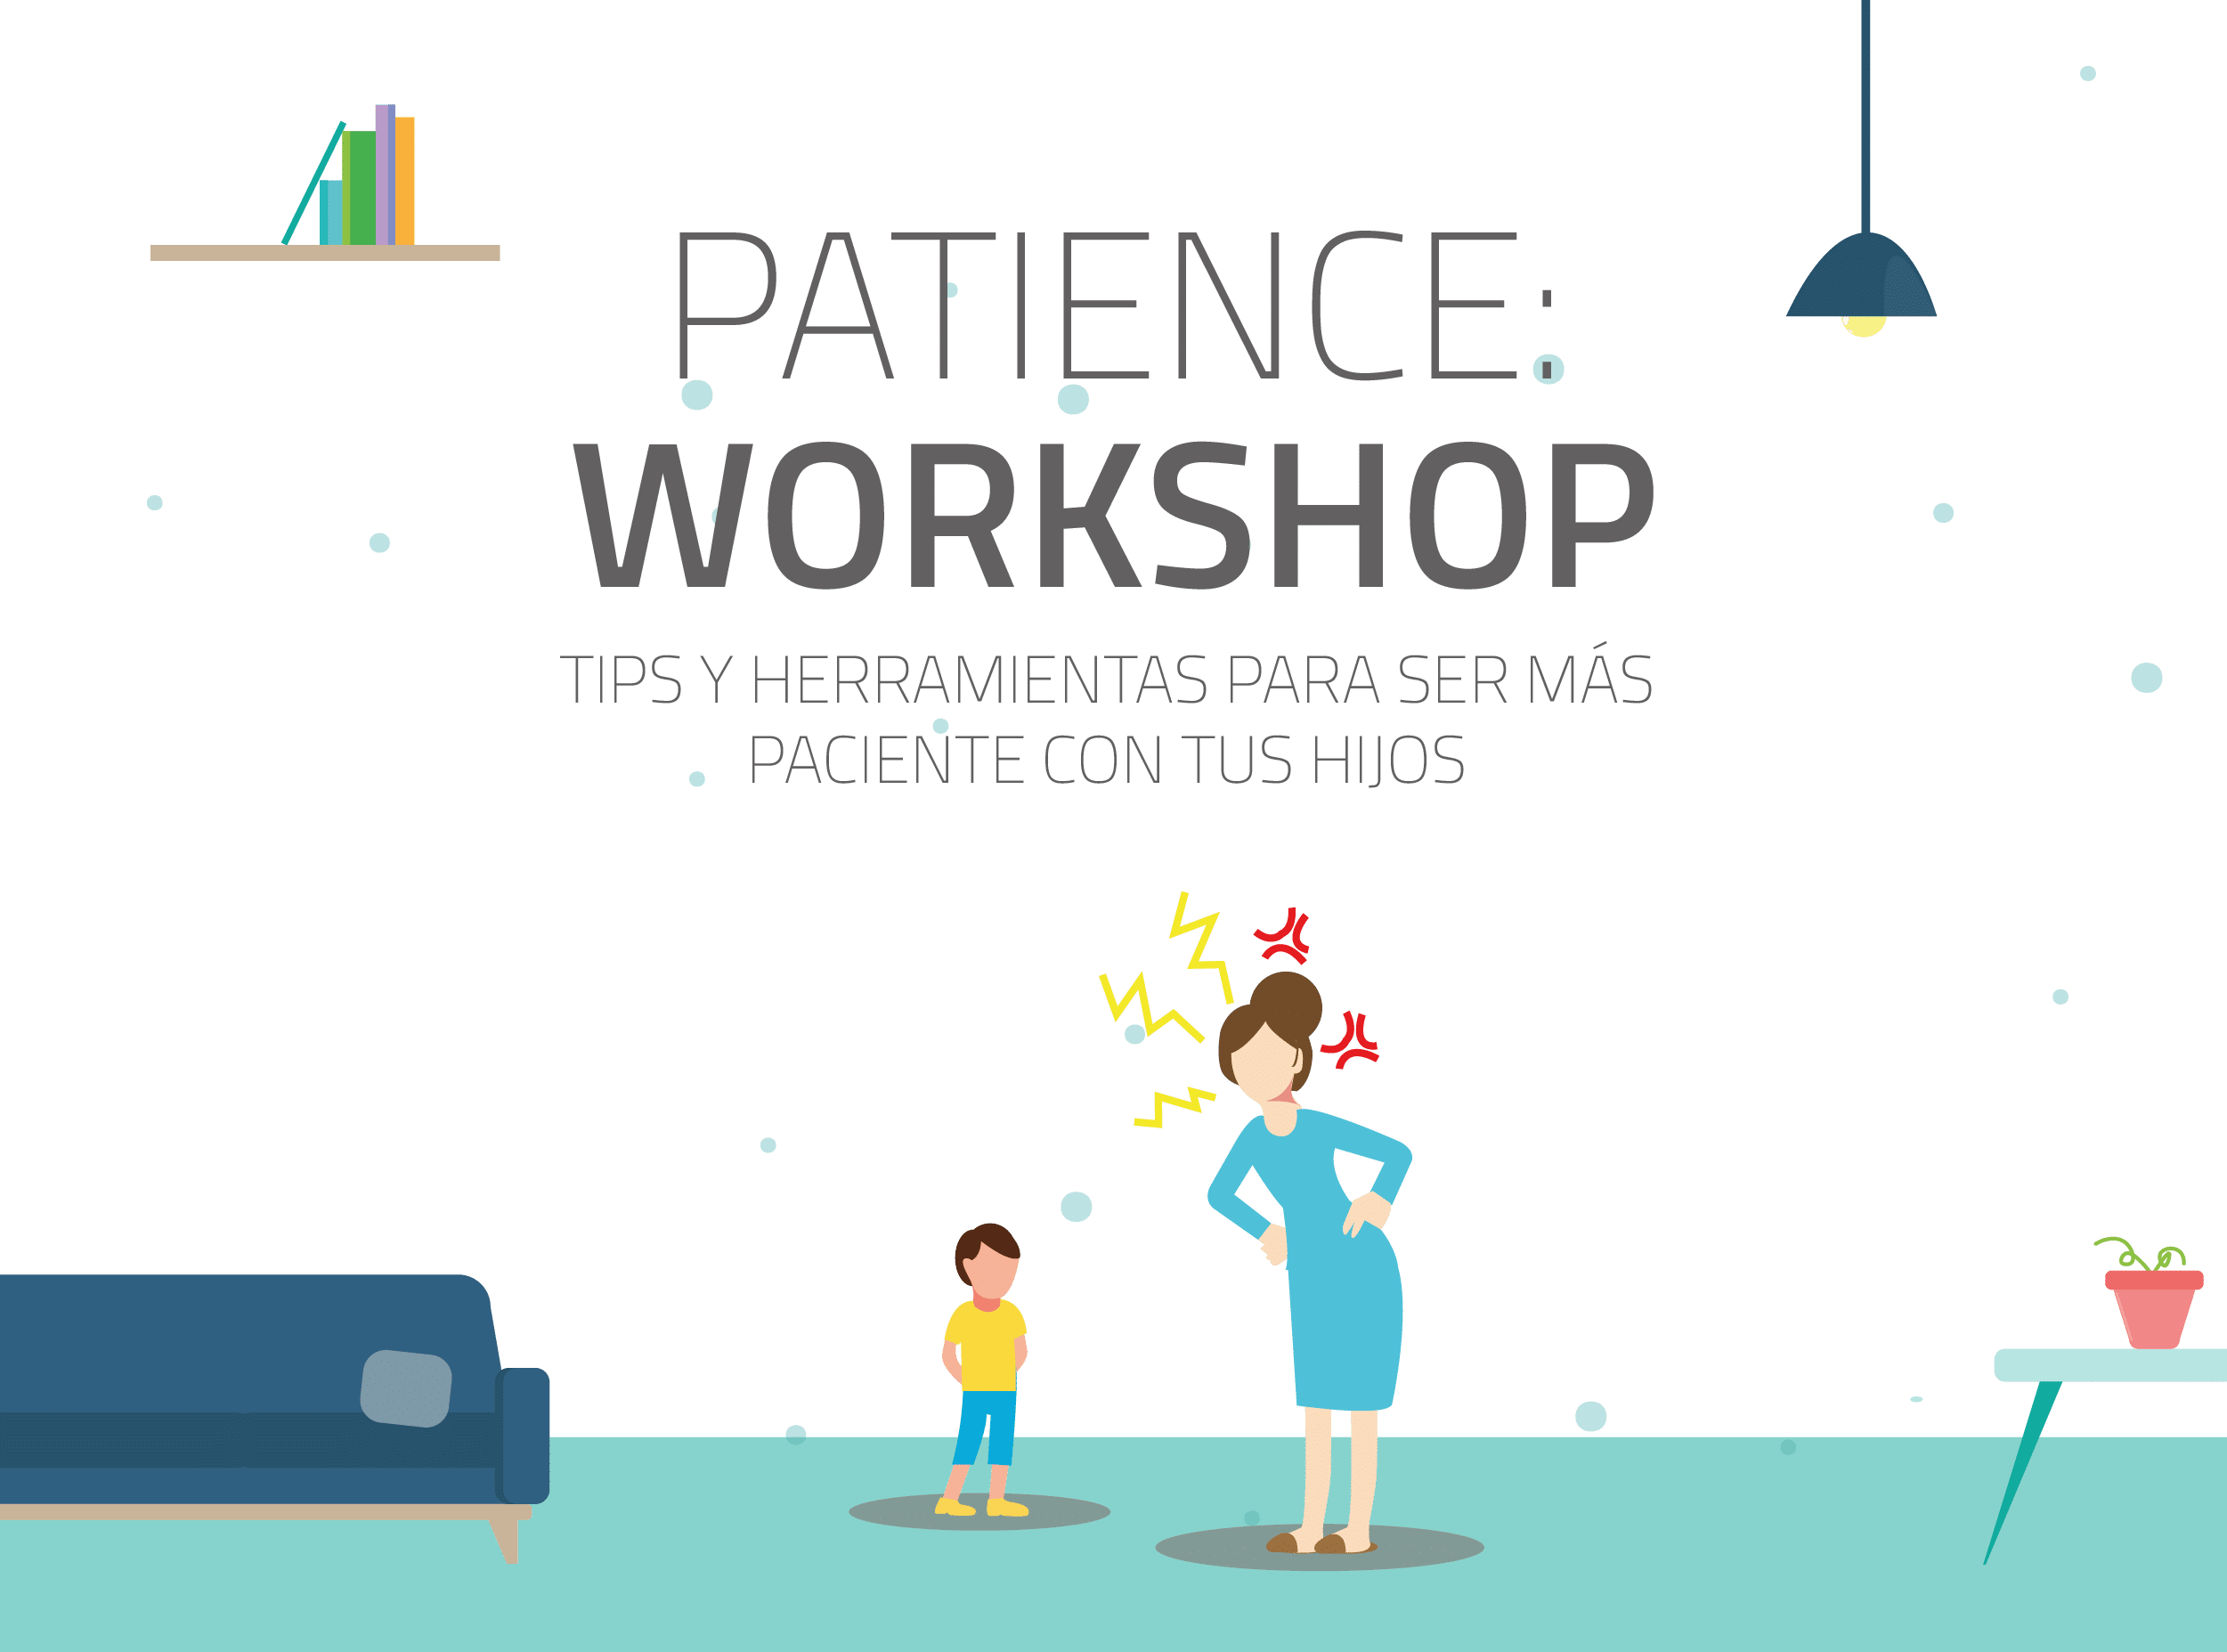 Patience Workshop